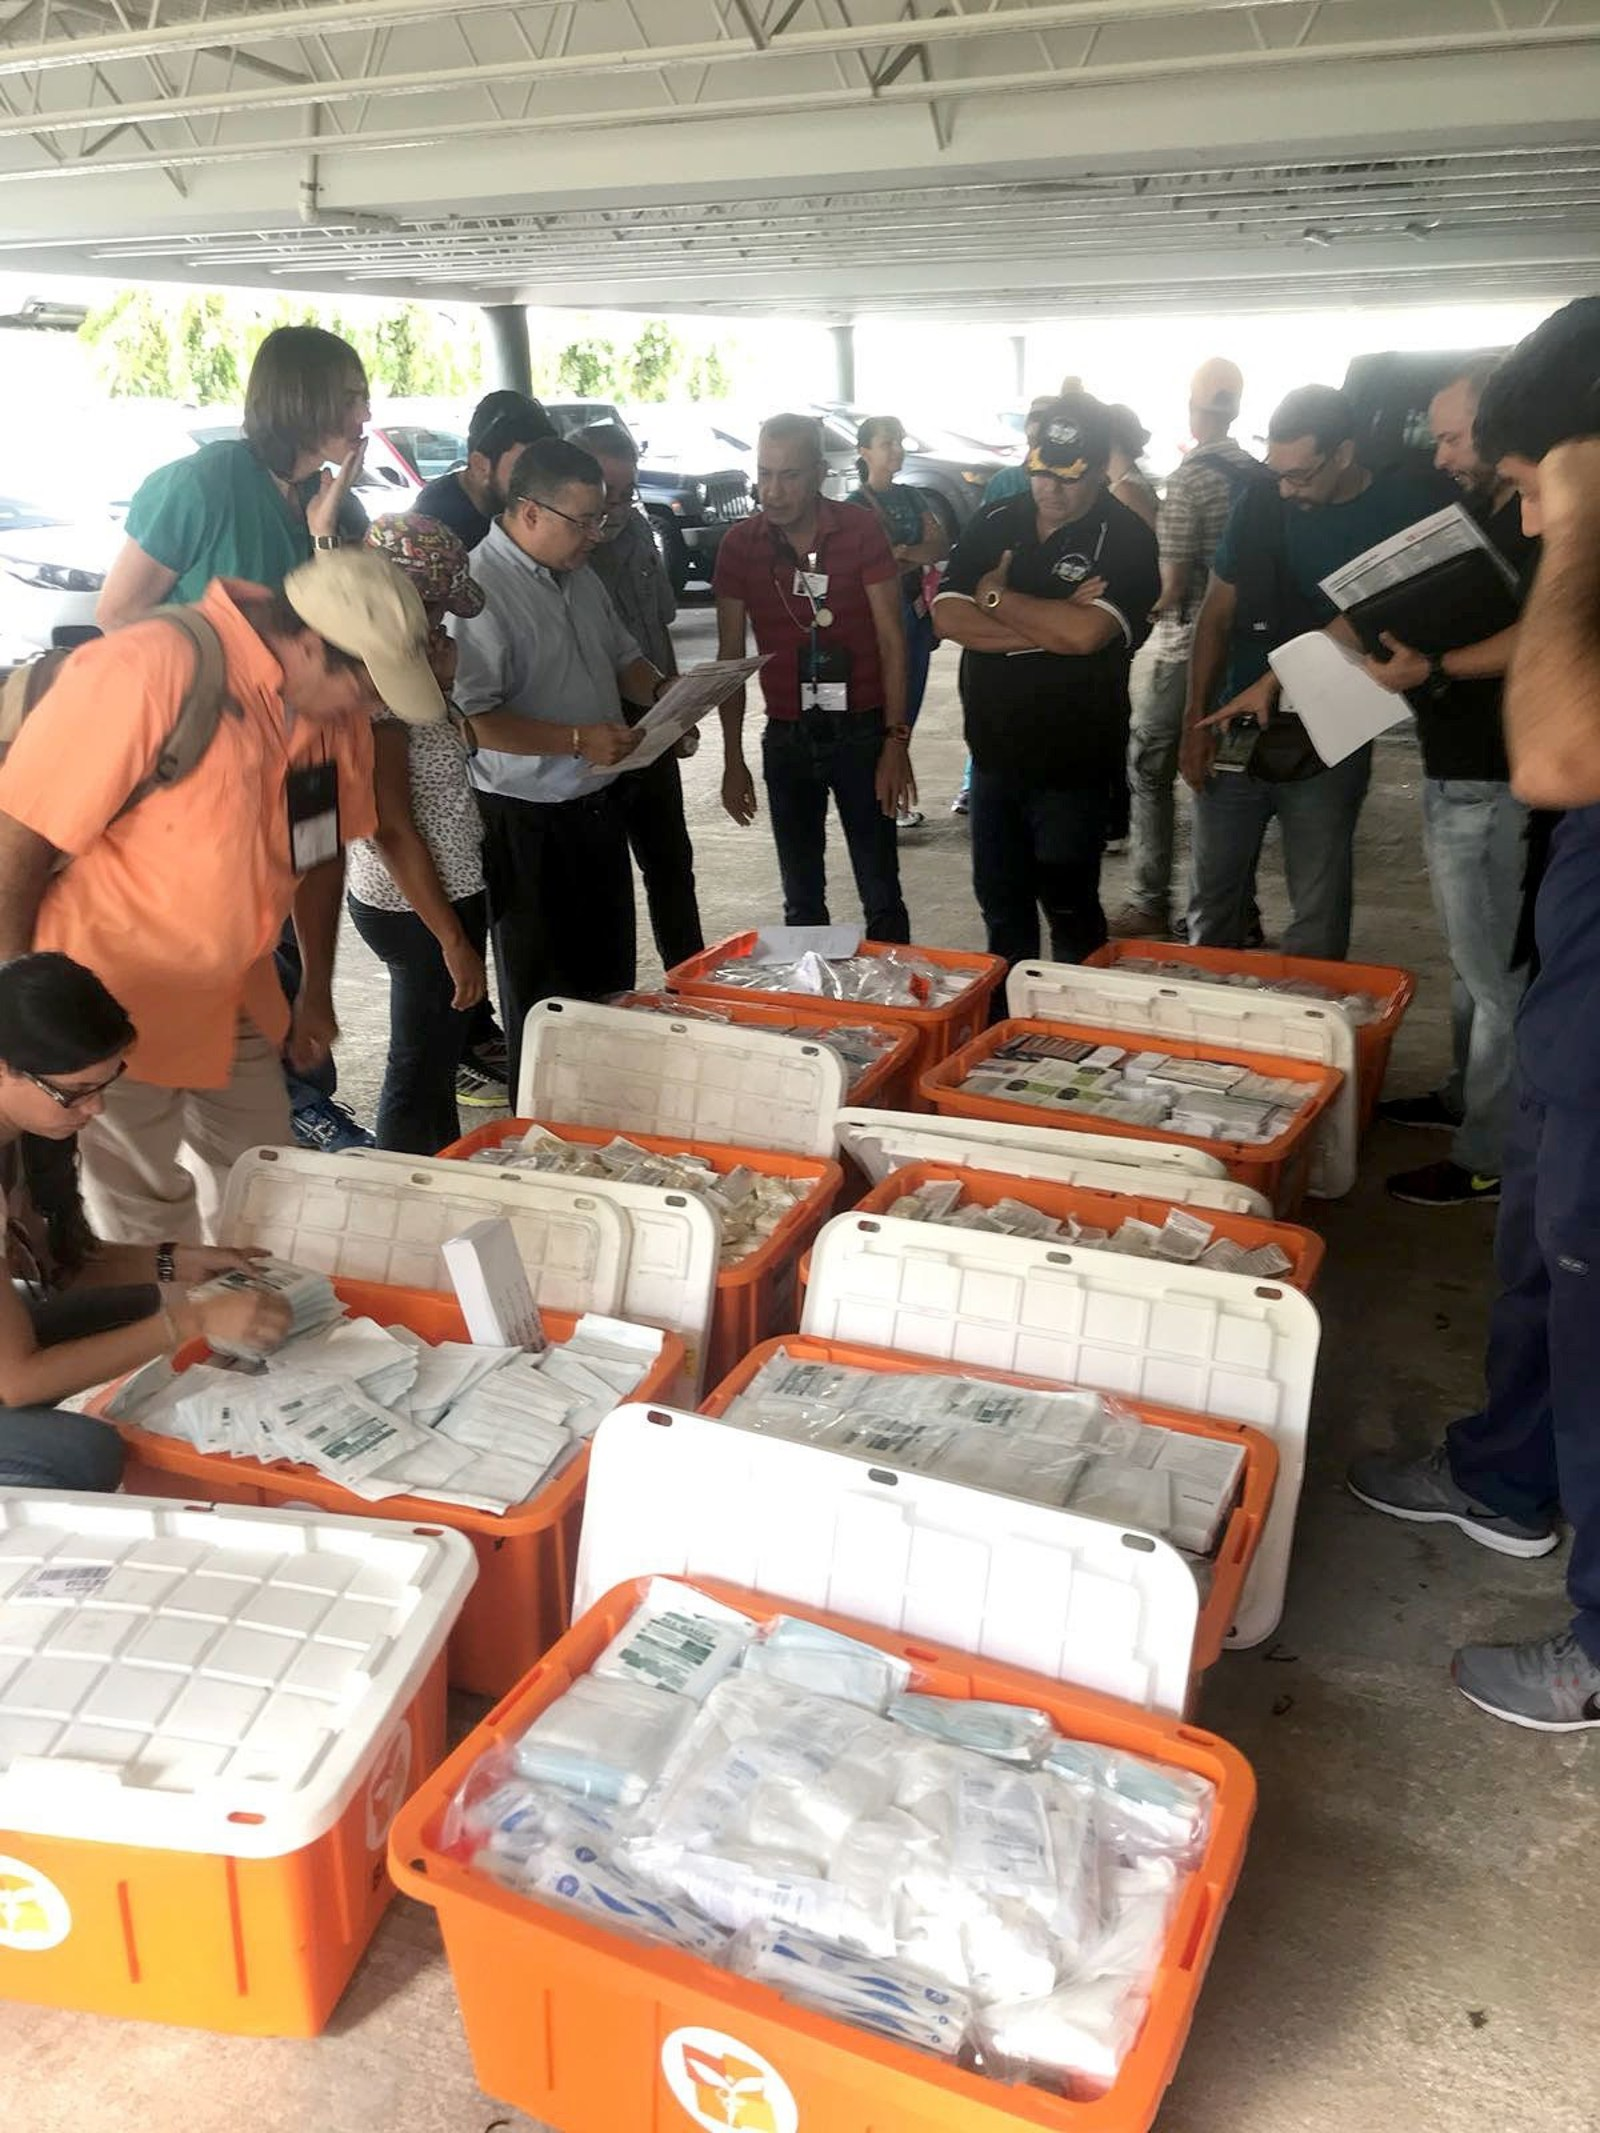 Doctors and nurses meet with Direct Relief staff Friday morning in San Juan, Puerto Rico to stock up on emergency supplies. Direct Relief provided staff with Emergency Health Kits, which contain basic medicines and first aid supplies, which equipped the healthcare providers as they traveled to 15 different towns across Puerto Rico to provide medical care. (Gordon Willcock/Direct Relief) (PRNewsfoto/Direct Relief)